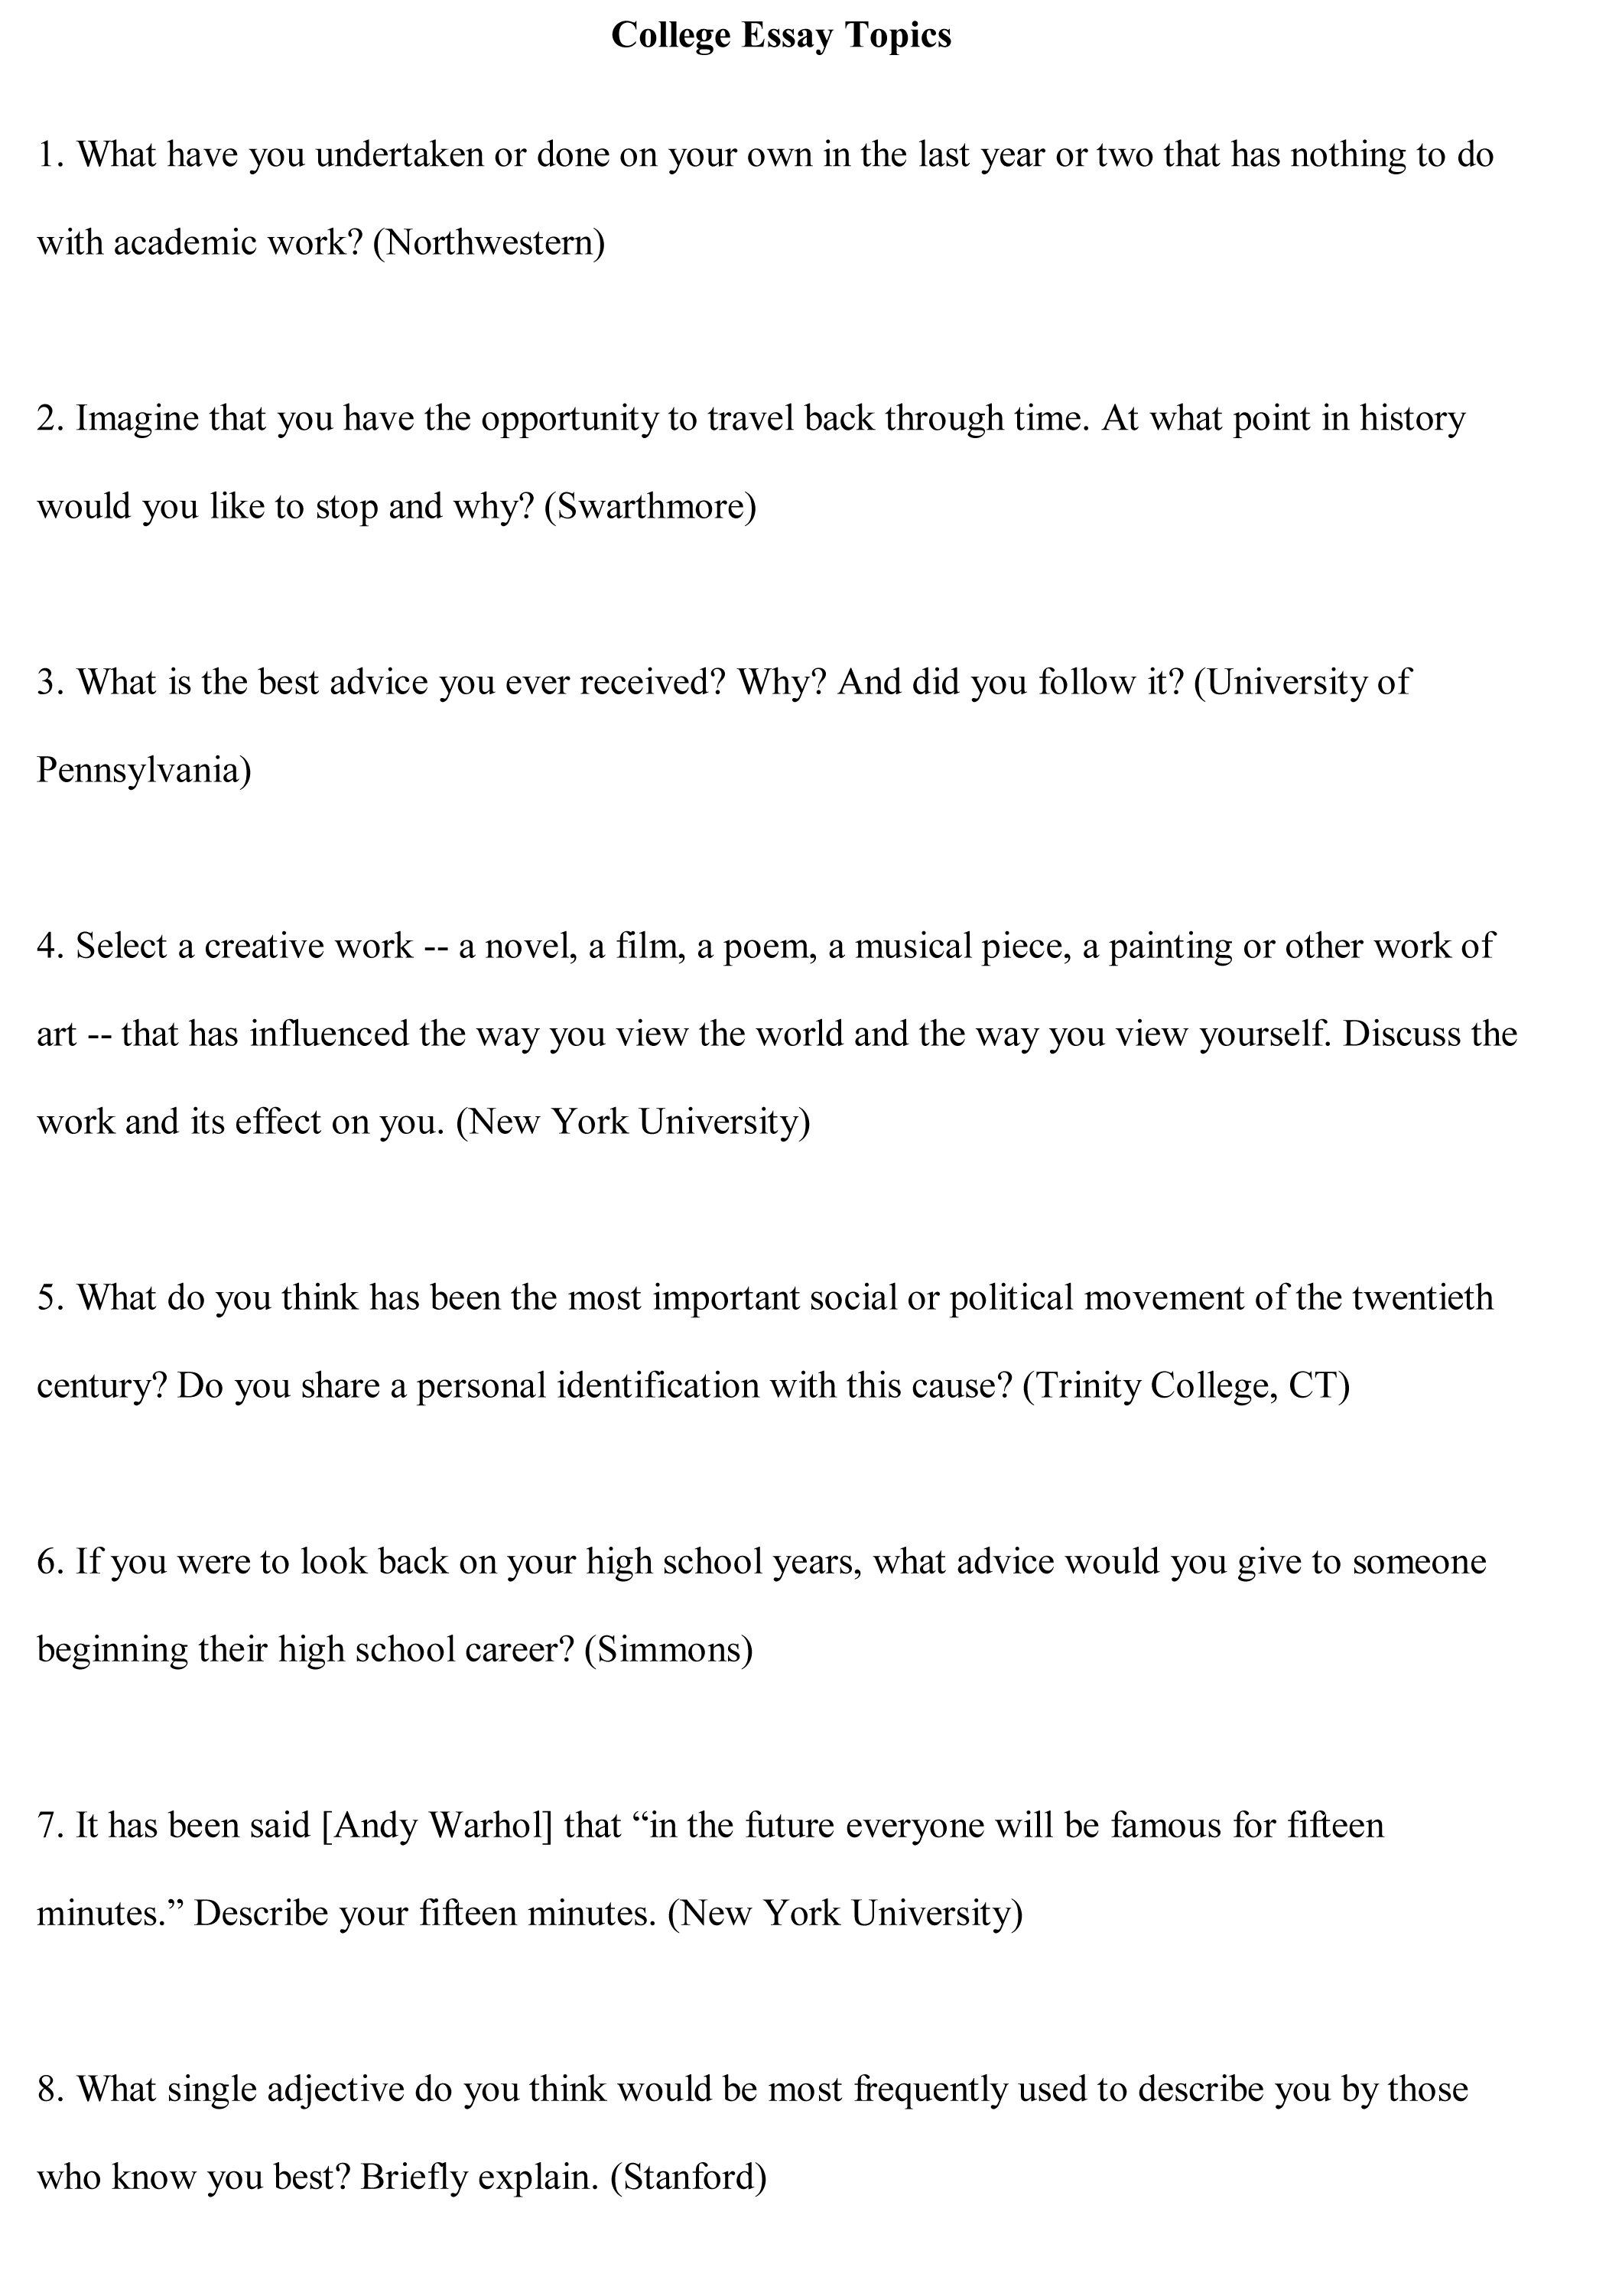 025 College Essay Topics Free Sample1 Prompts For Writing Essays Best Persuasive Opinion 4th Grade Full